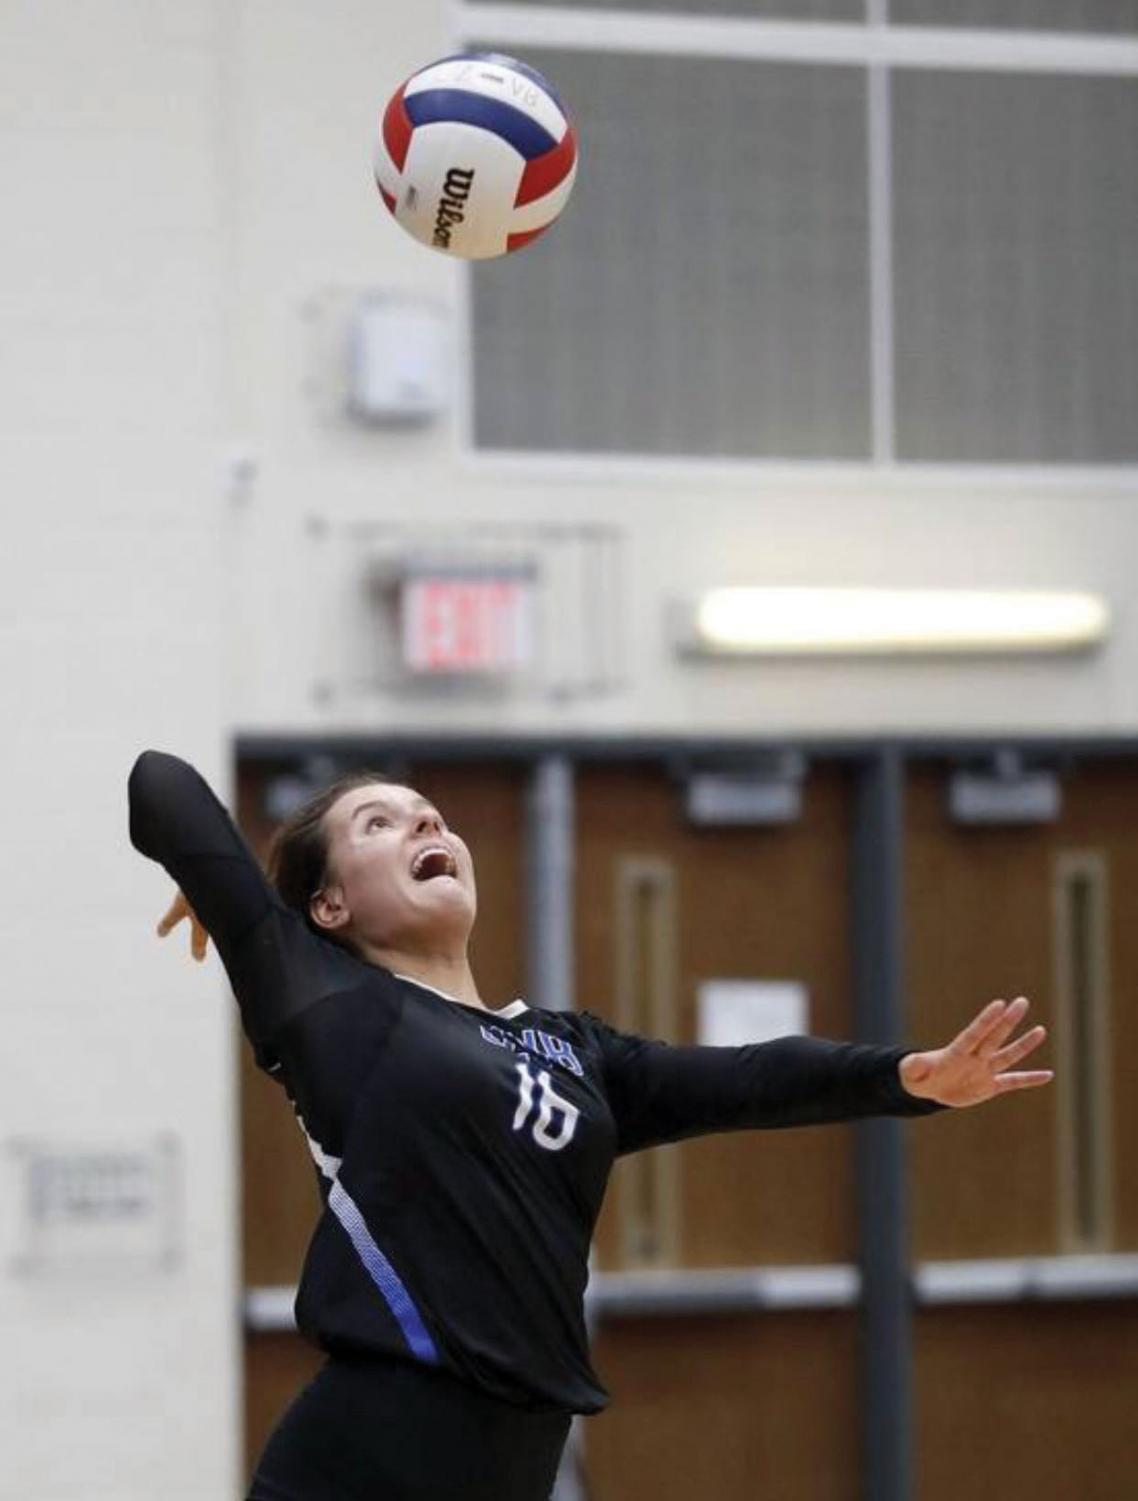 """Claudia Kieda, senior volleyball player and track runner, prepares to spike the ball during a volleyball match. Kieda says she enjoys being a multi-sport athlete because """"it's just fun to be involved in something constantly because each sport has a different season."""""""